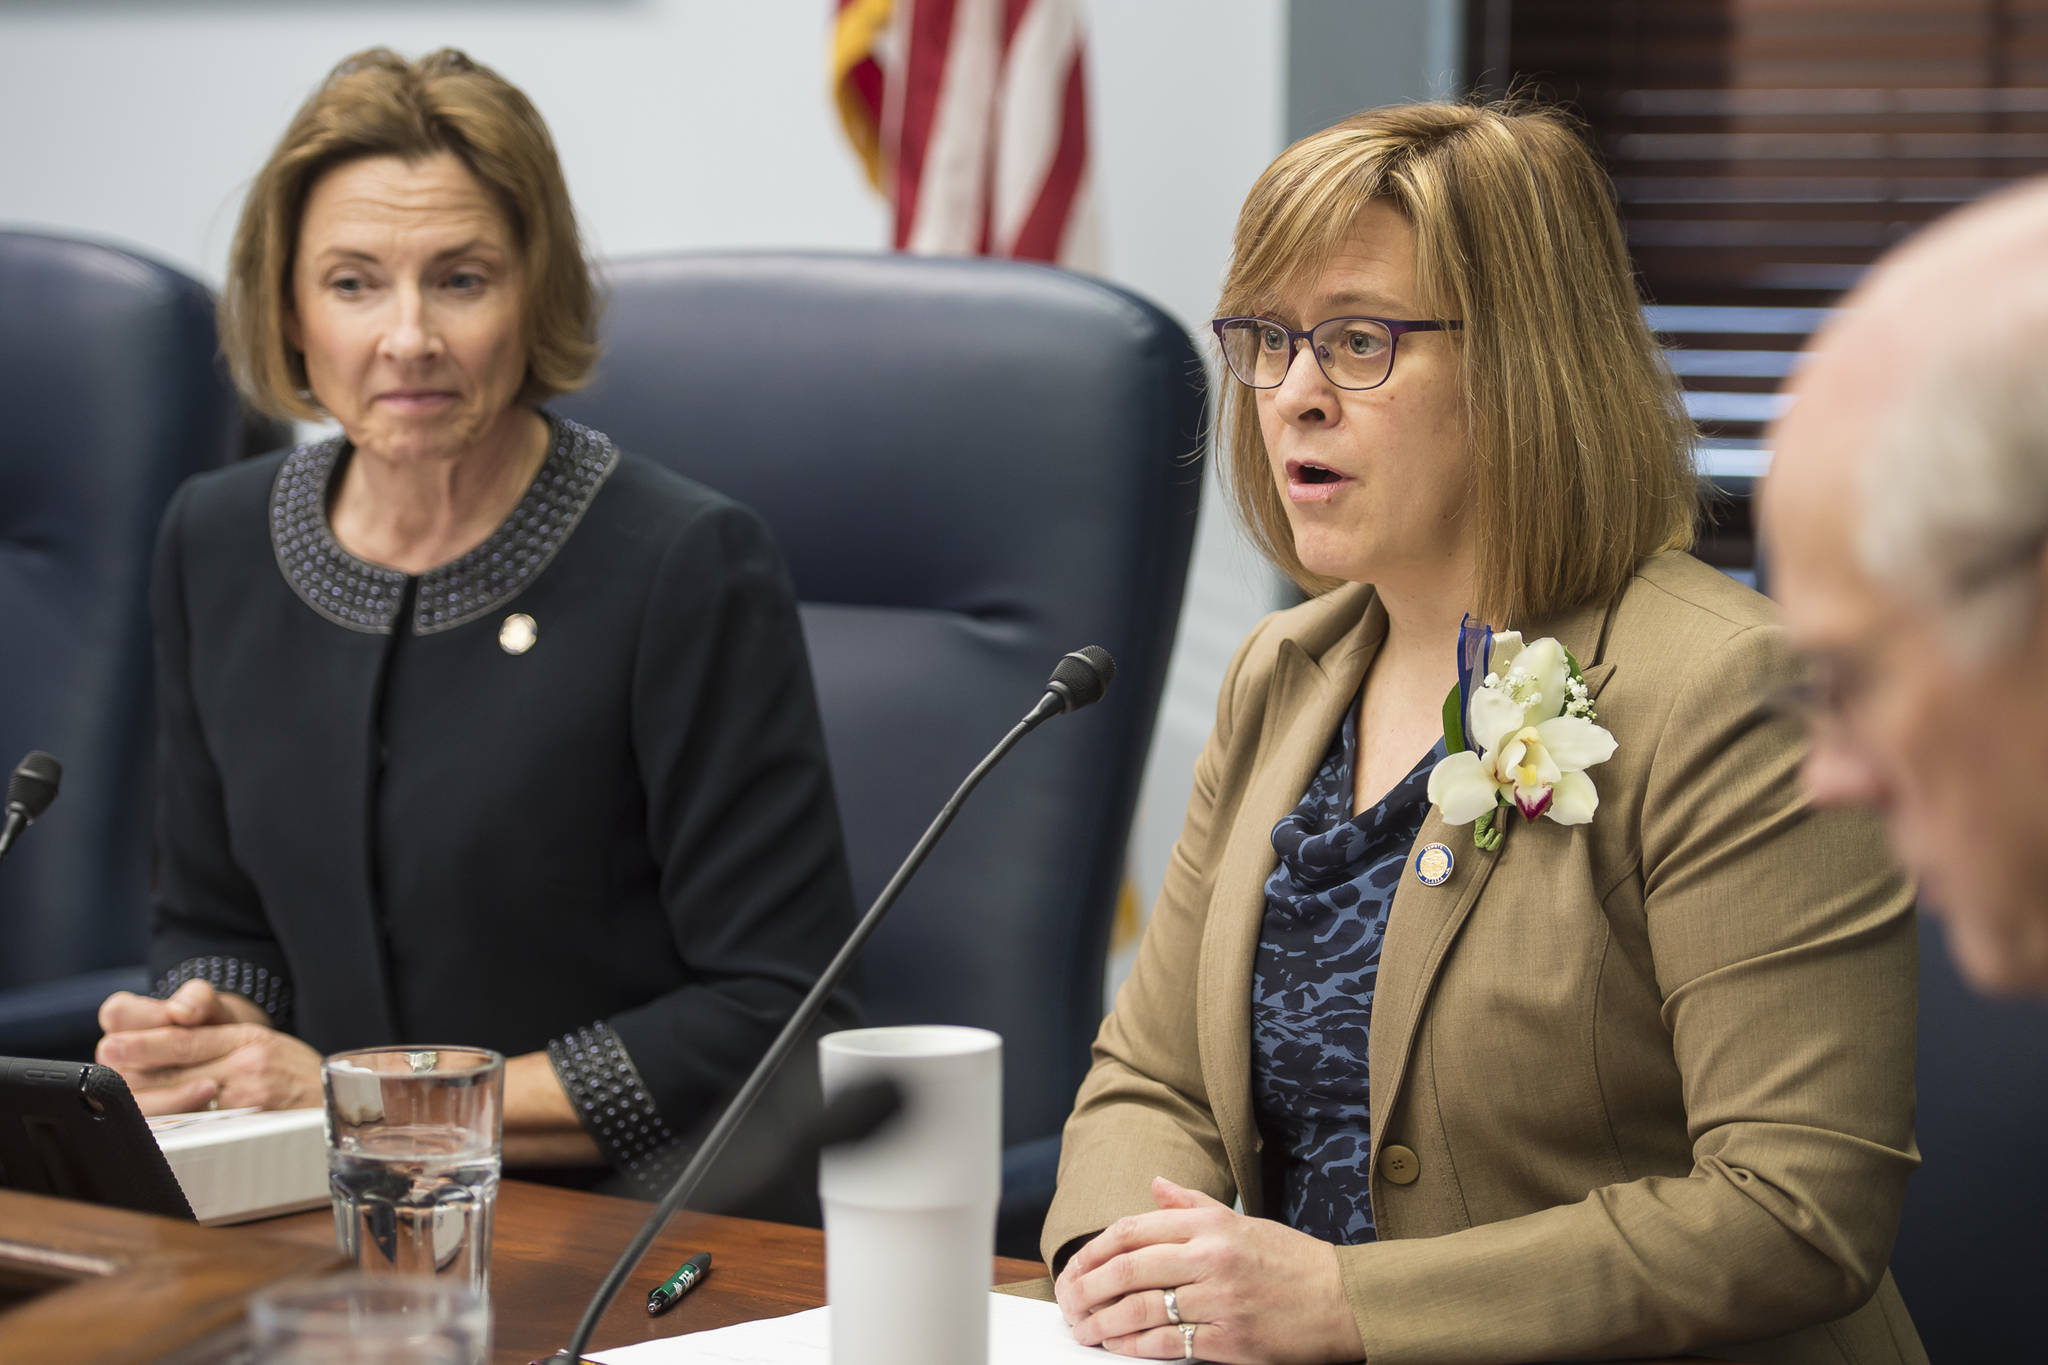 Sen. Mia Costello, R-Anchorage, right, and Senate President Cathy Giessel, R-Anchorage, speak during a Senate Majority press conference on the opening day of the 31st Session of the Alaska Legislature on Tuesday, Jan. 15, 2019. (Michael Penn | Juneau Empire)